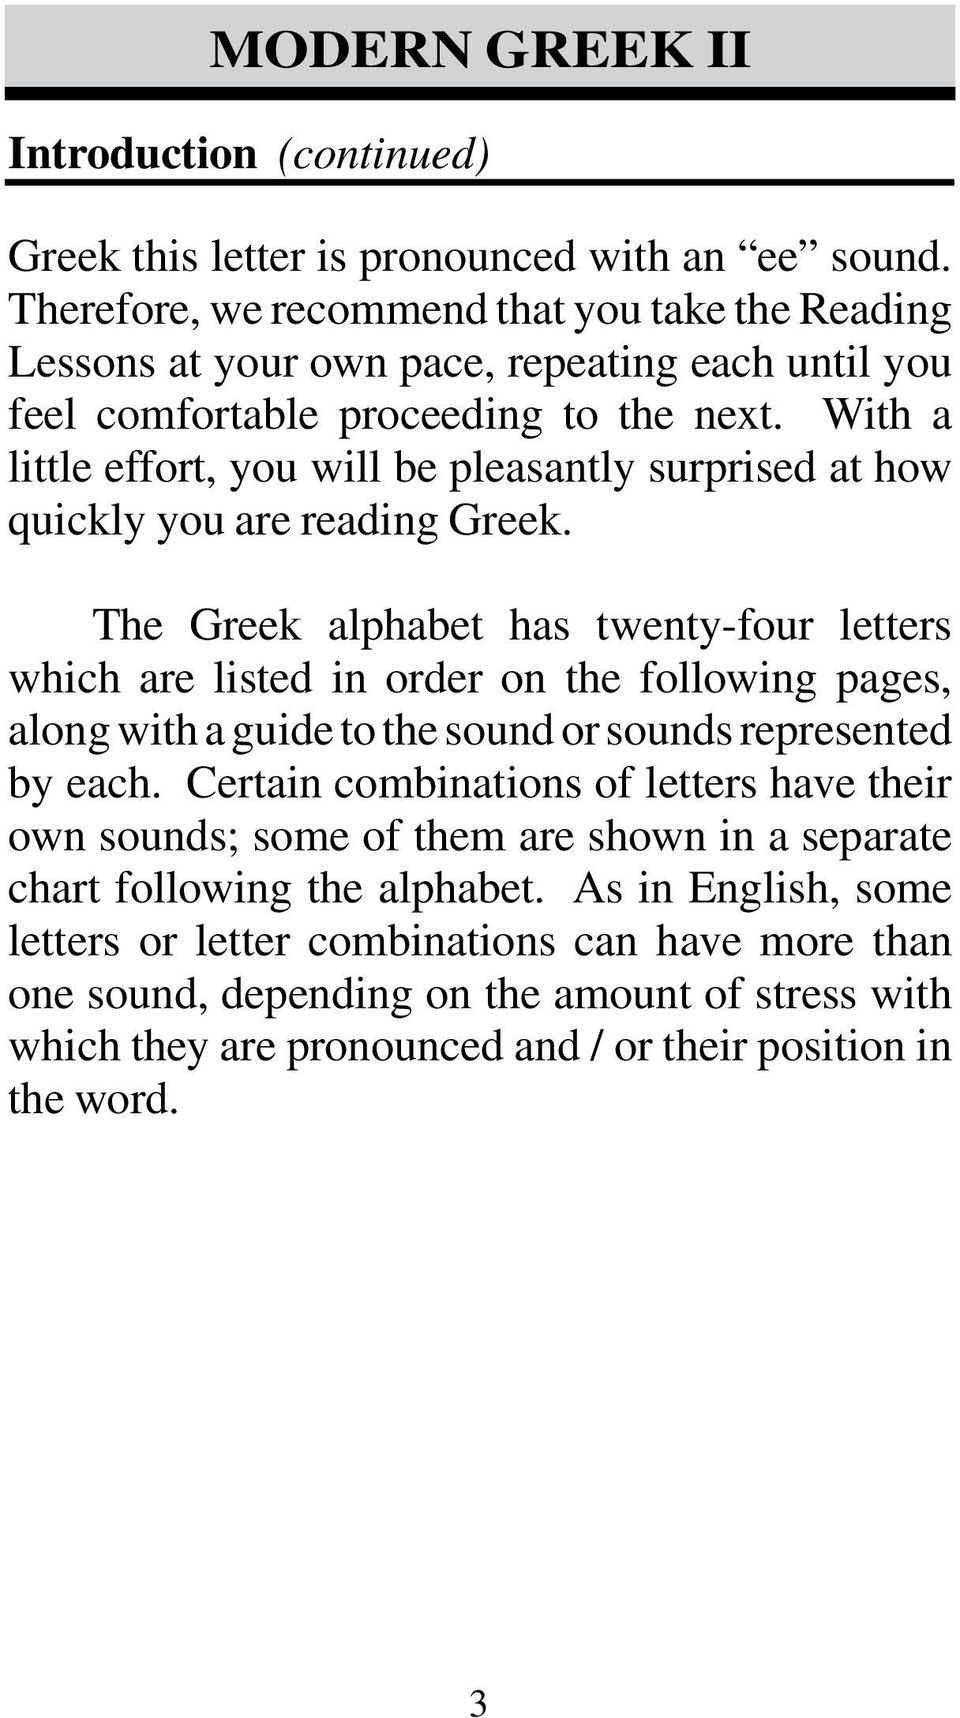 With a little effort, you will be pleasantly surprised at how quickly you are reading Greek.